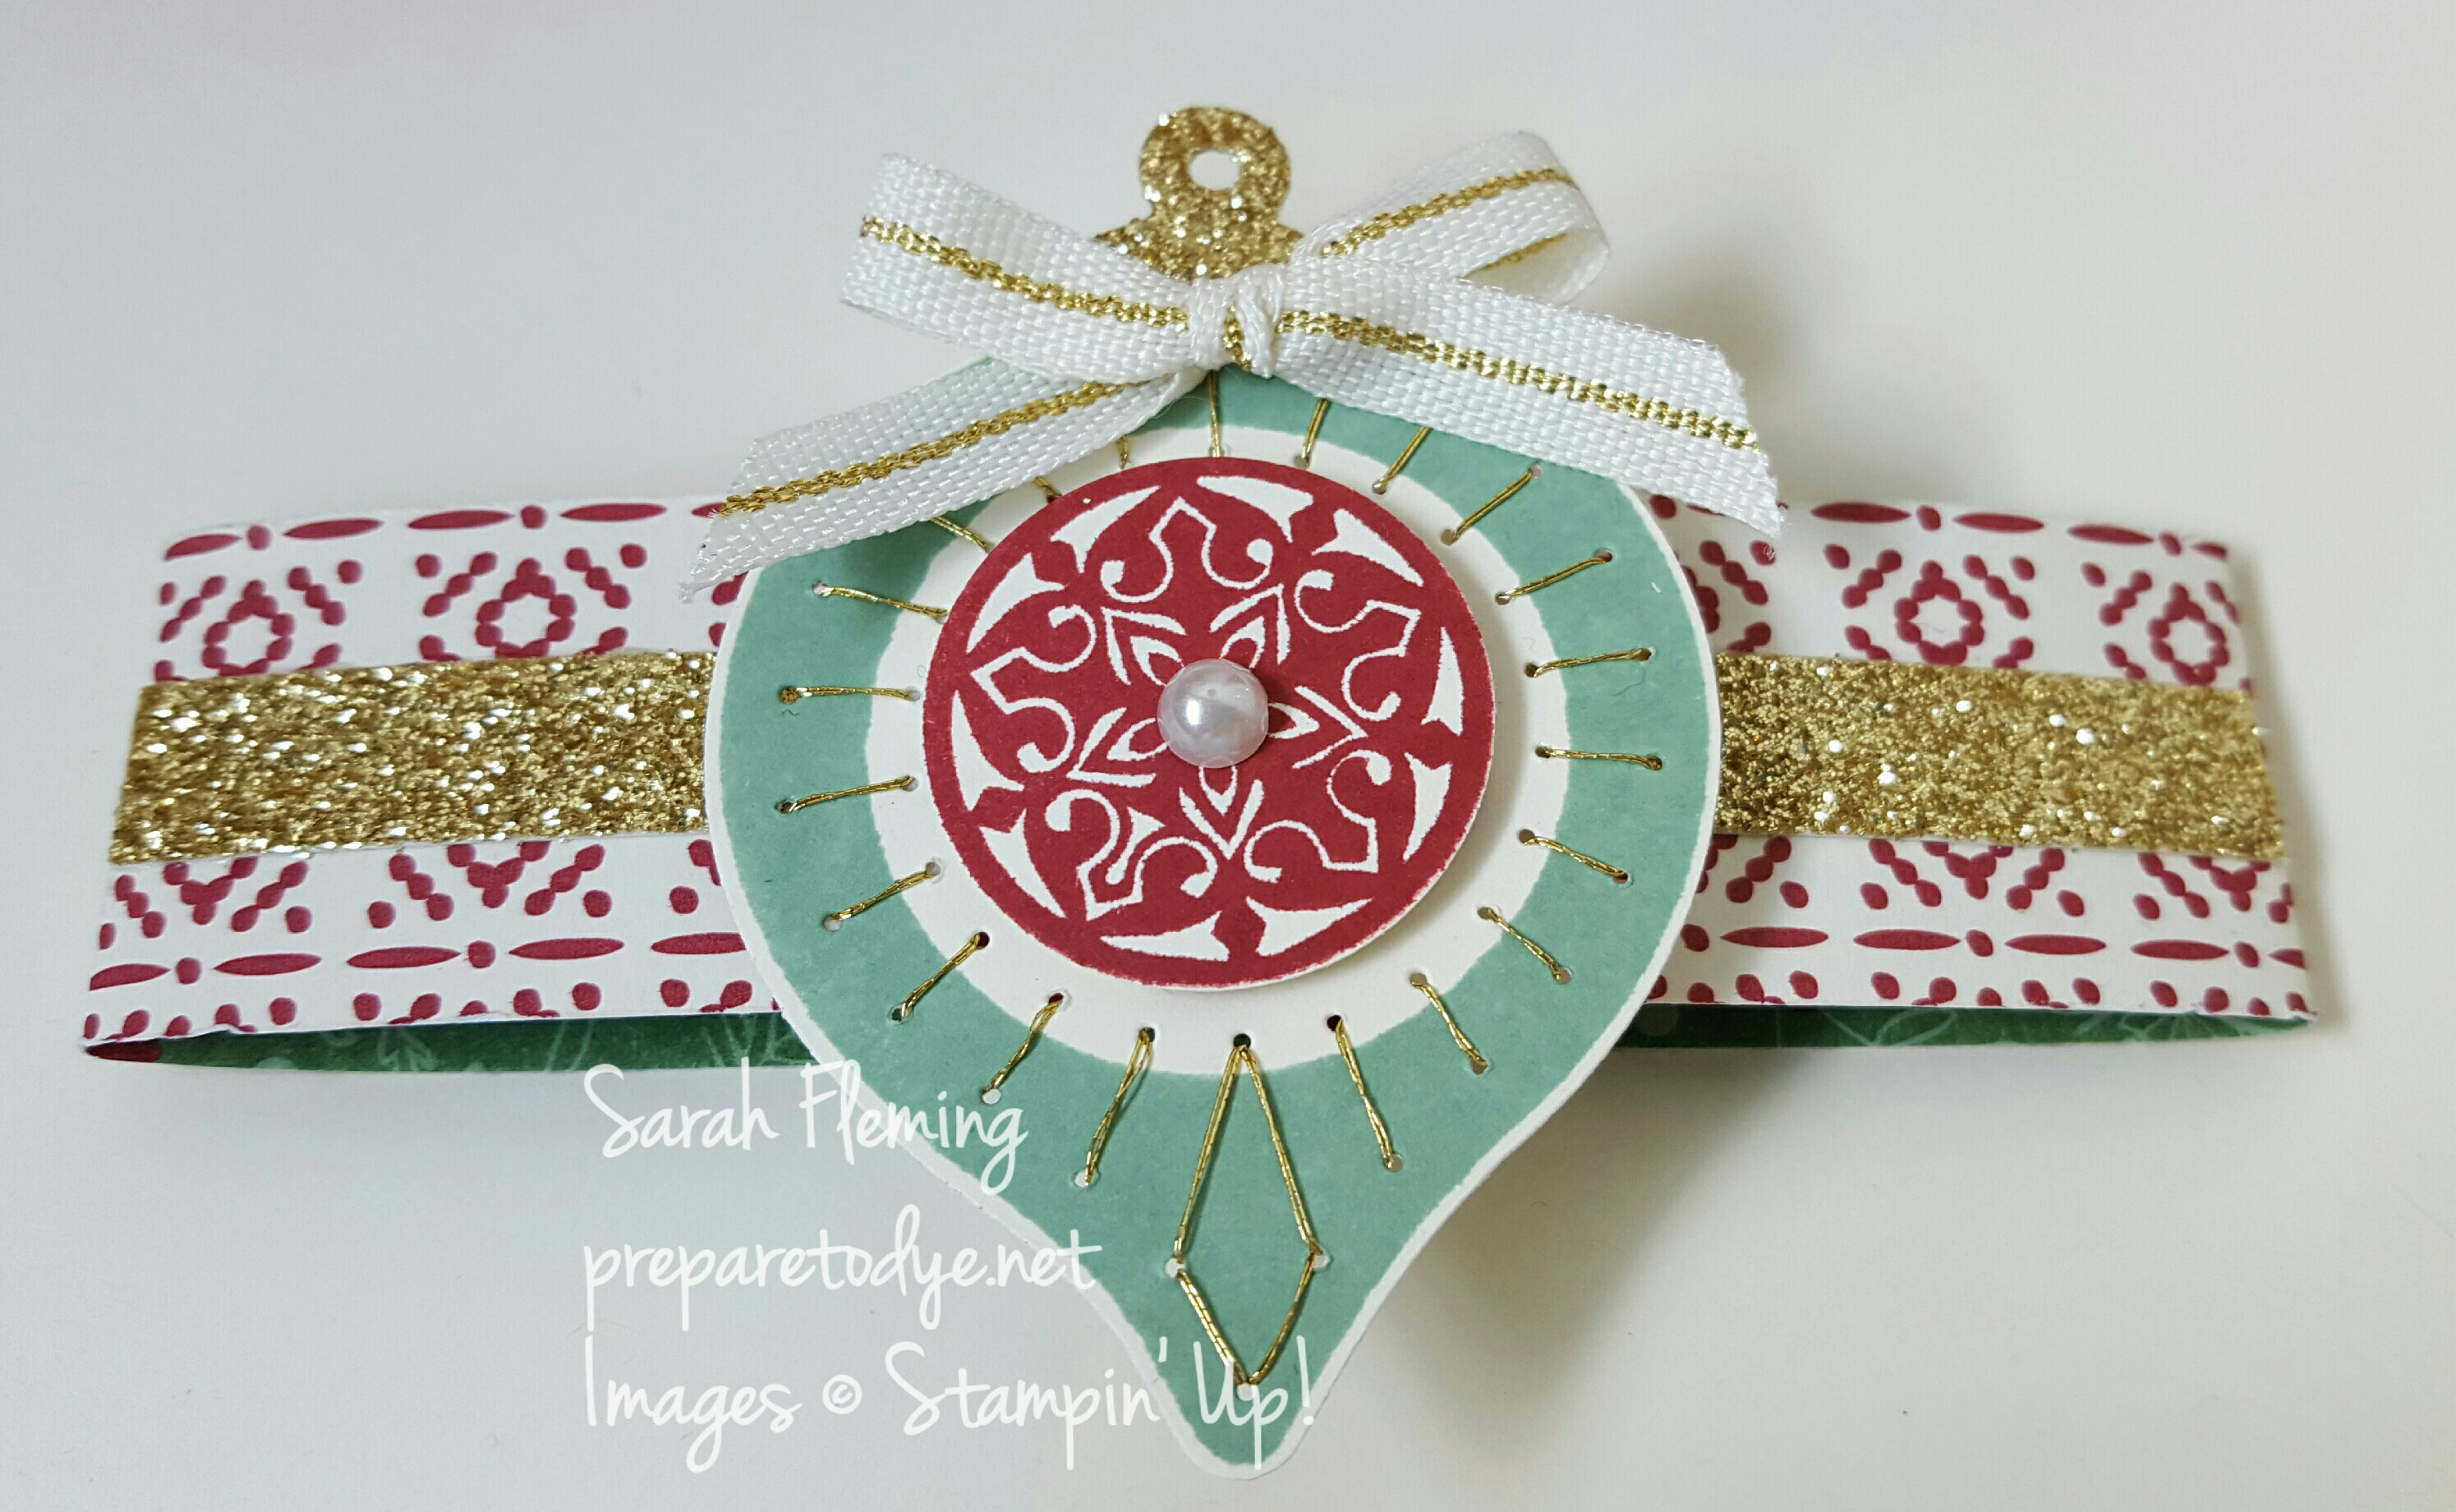 Double Gatefold card belly band - Festive Season bundle from Stampin' Up! - Sarah Fleming - Prepare to Dye